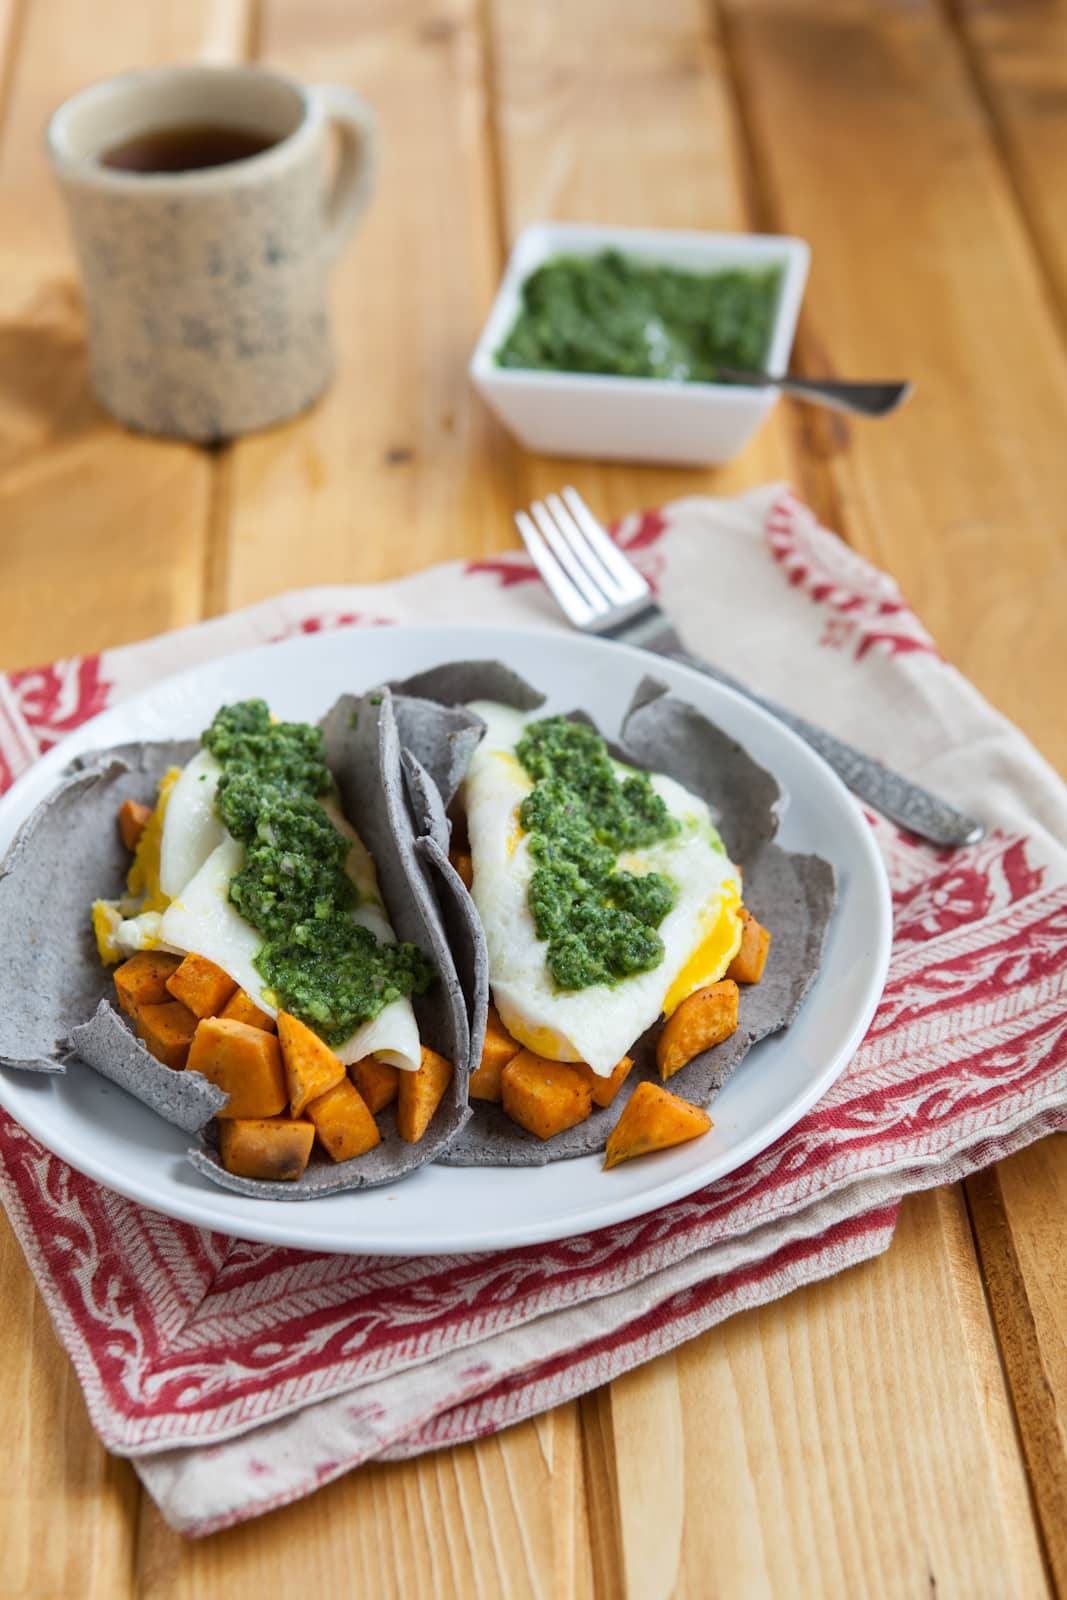 Breakfast Tacos with Kale-Cilantro Chimichurri Sauce | Naturally Ella